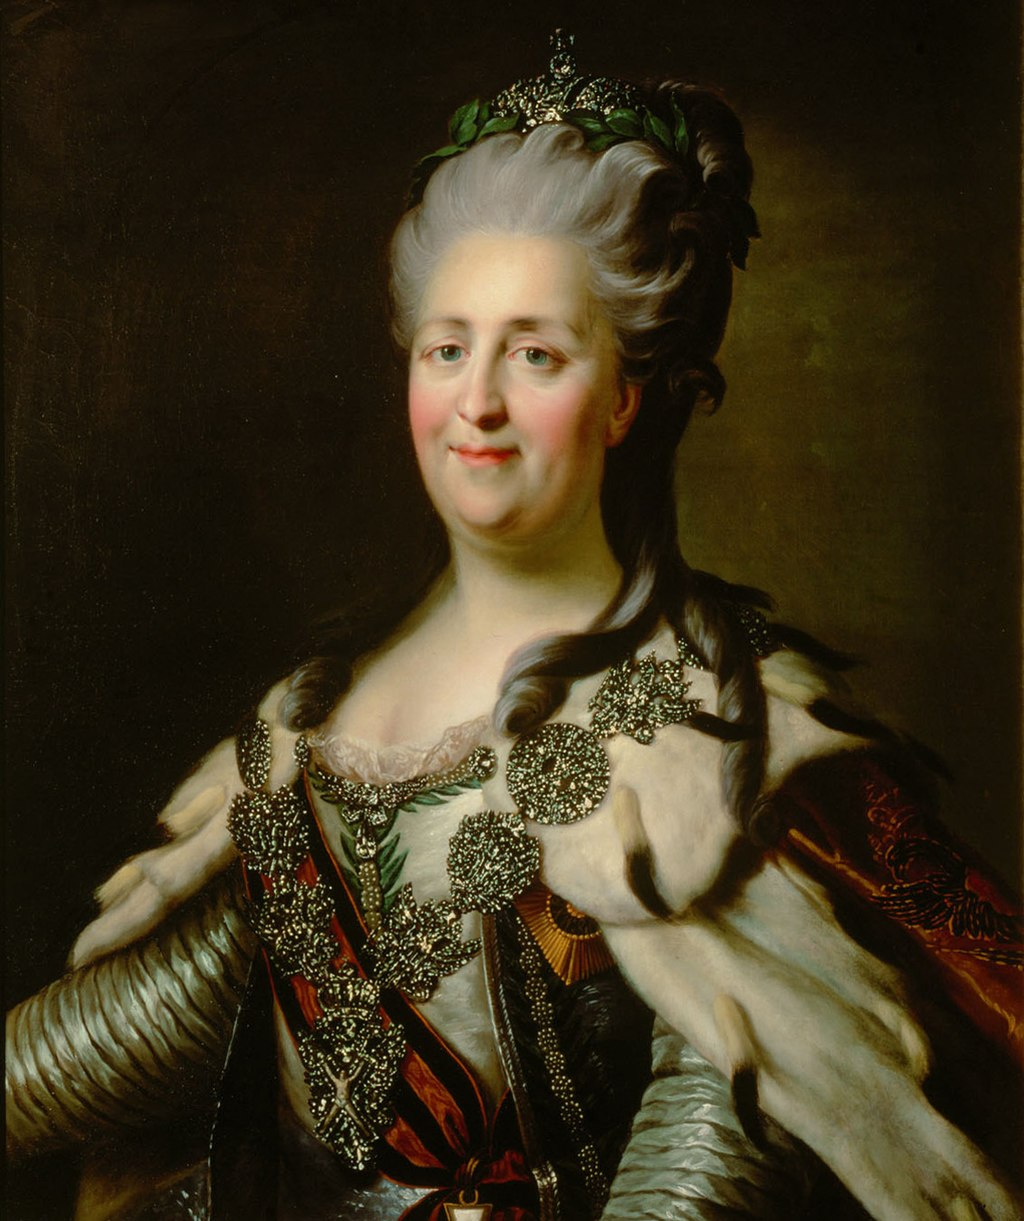 Painting of Catherine the Great by Johann Baptist von Lampi the Elder